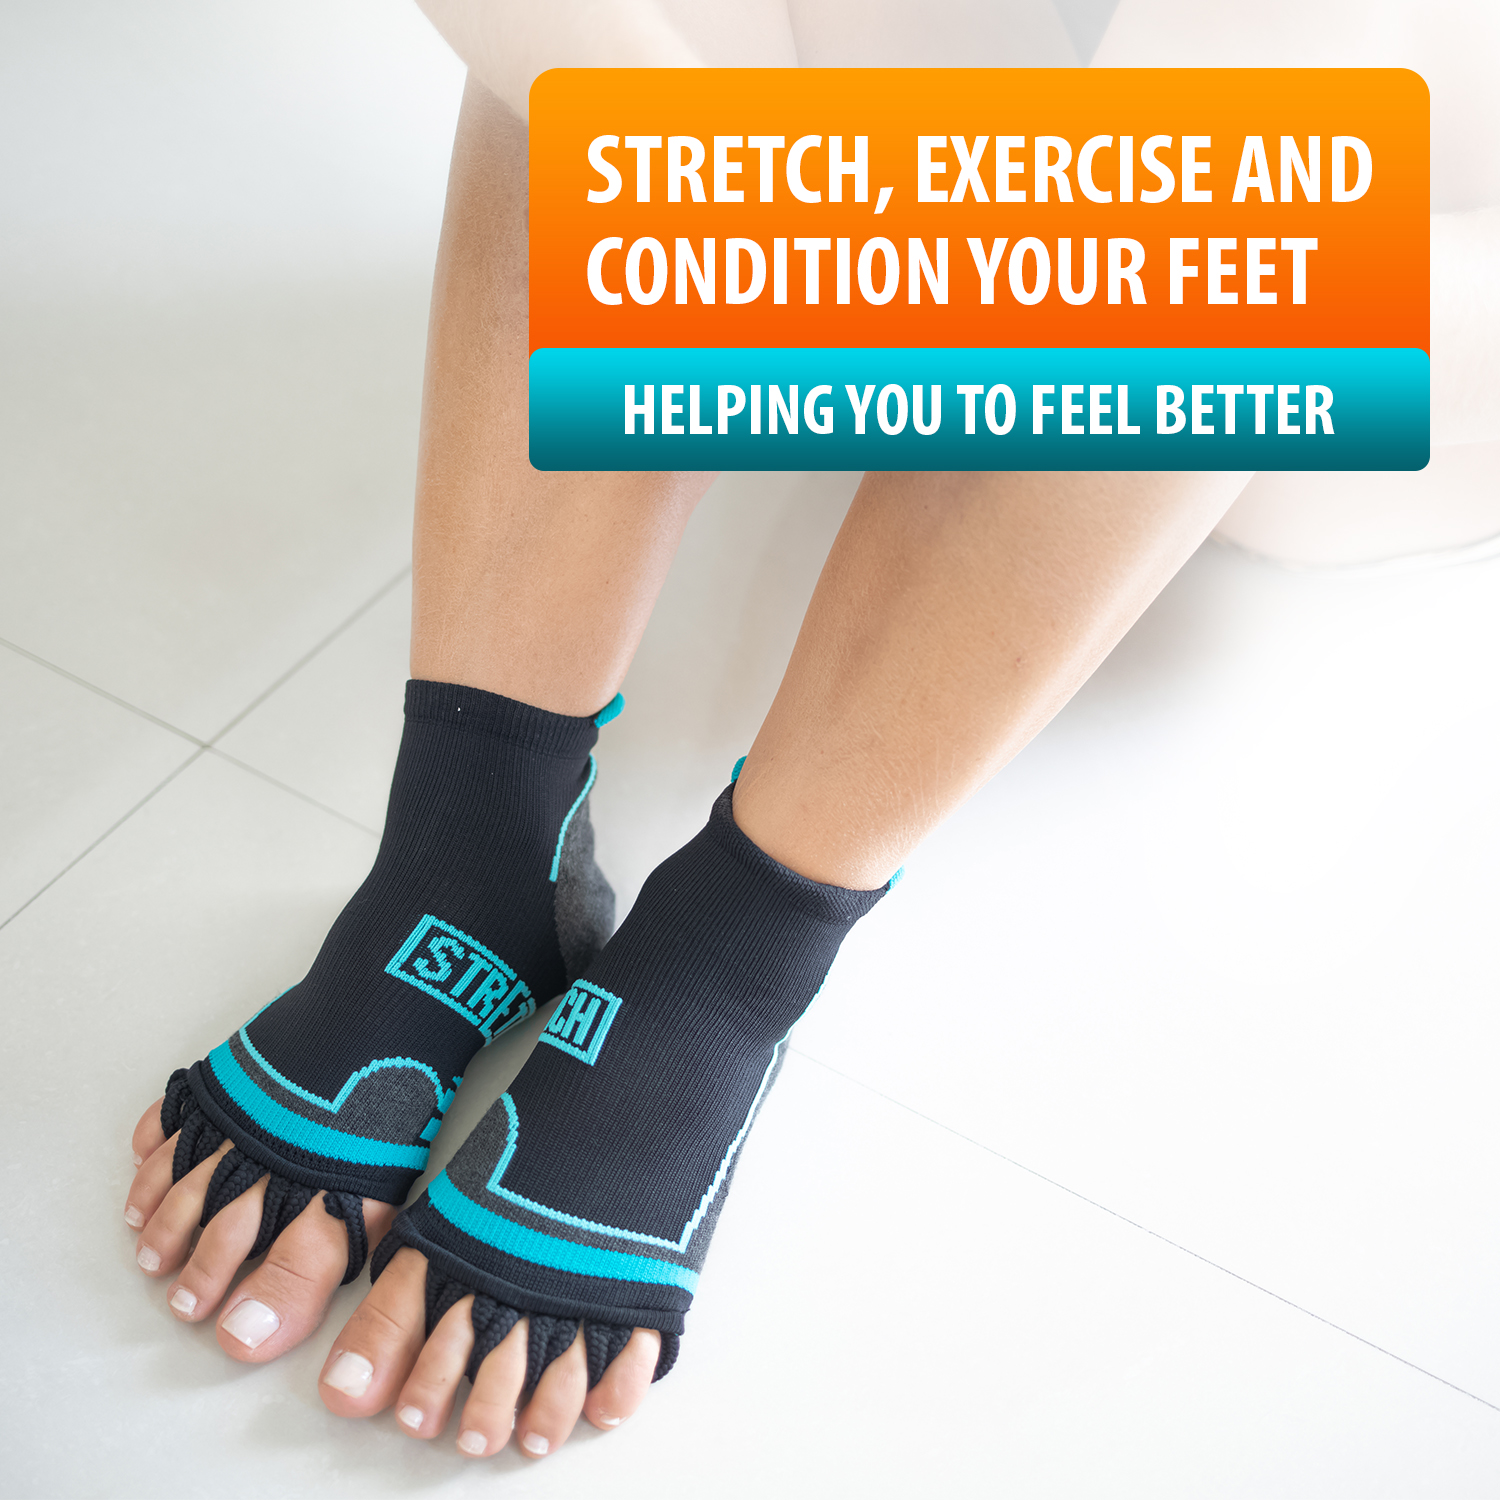 Toe Separator Socks by Stretch; Toe Spacer Foot Alignment Sock for Bunion Relief